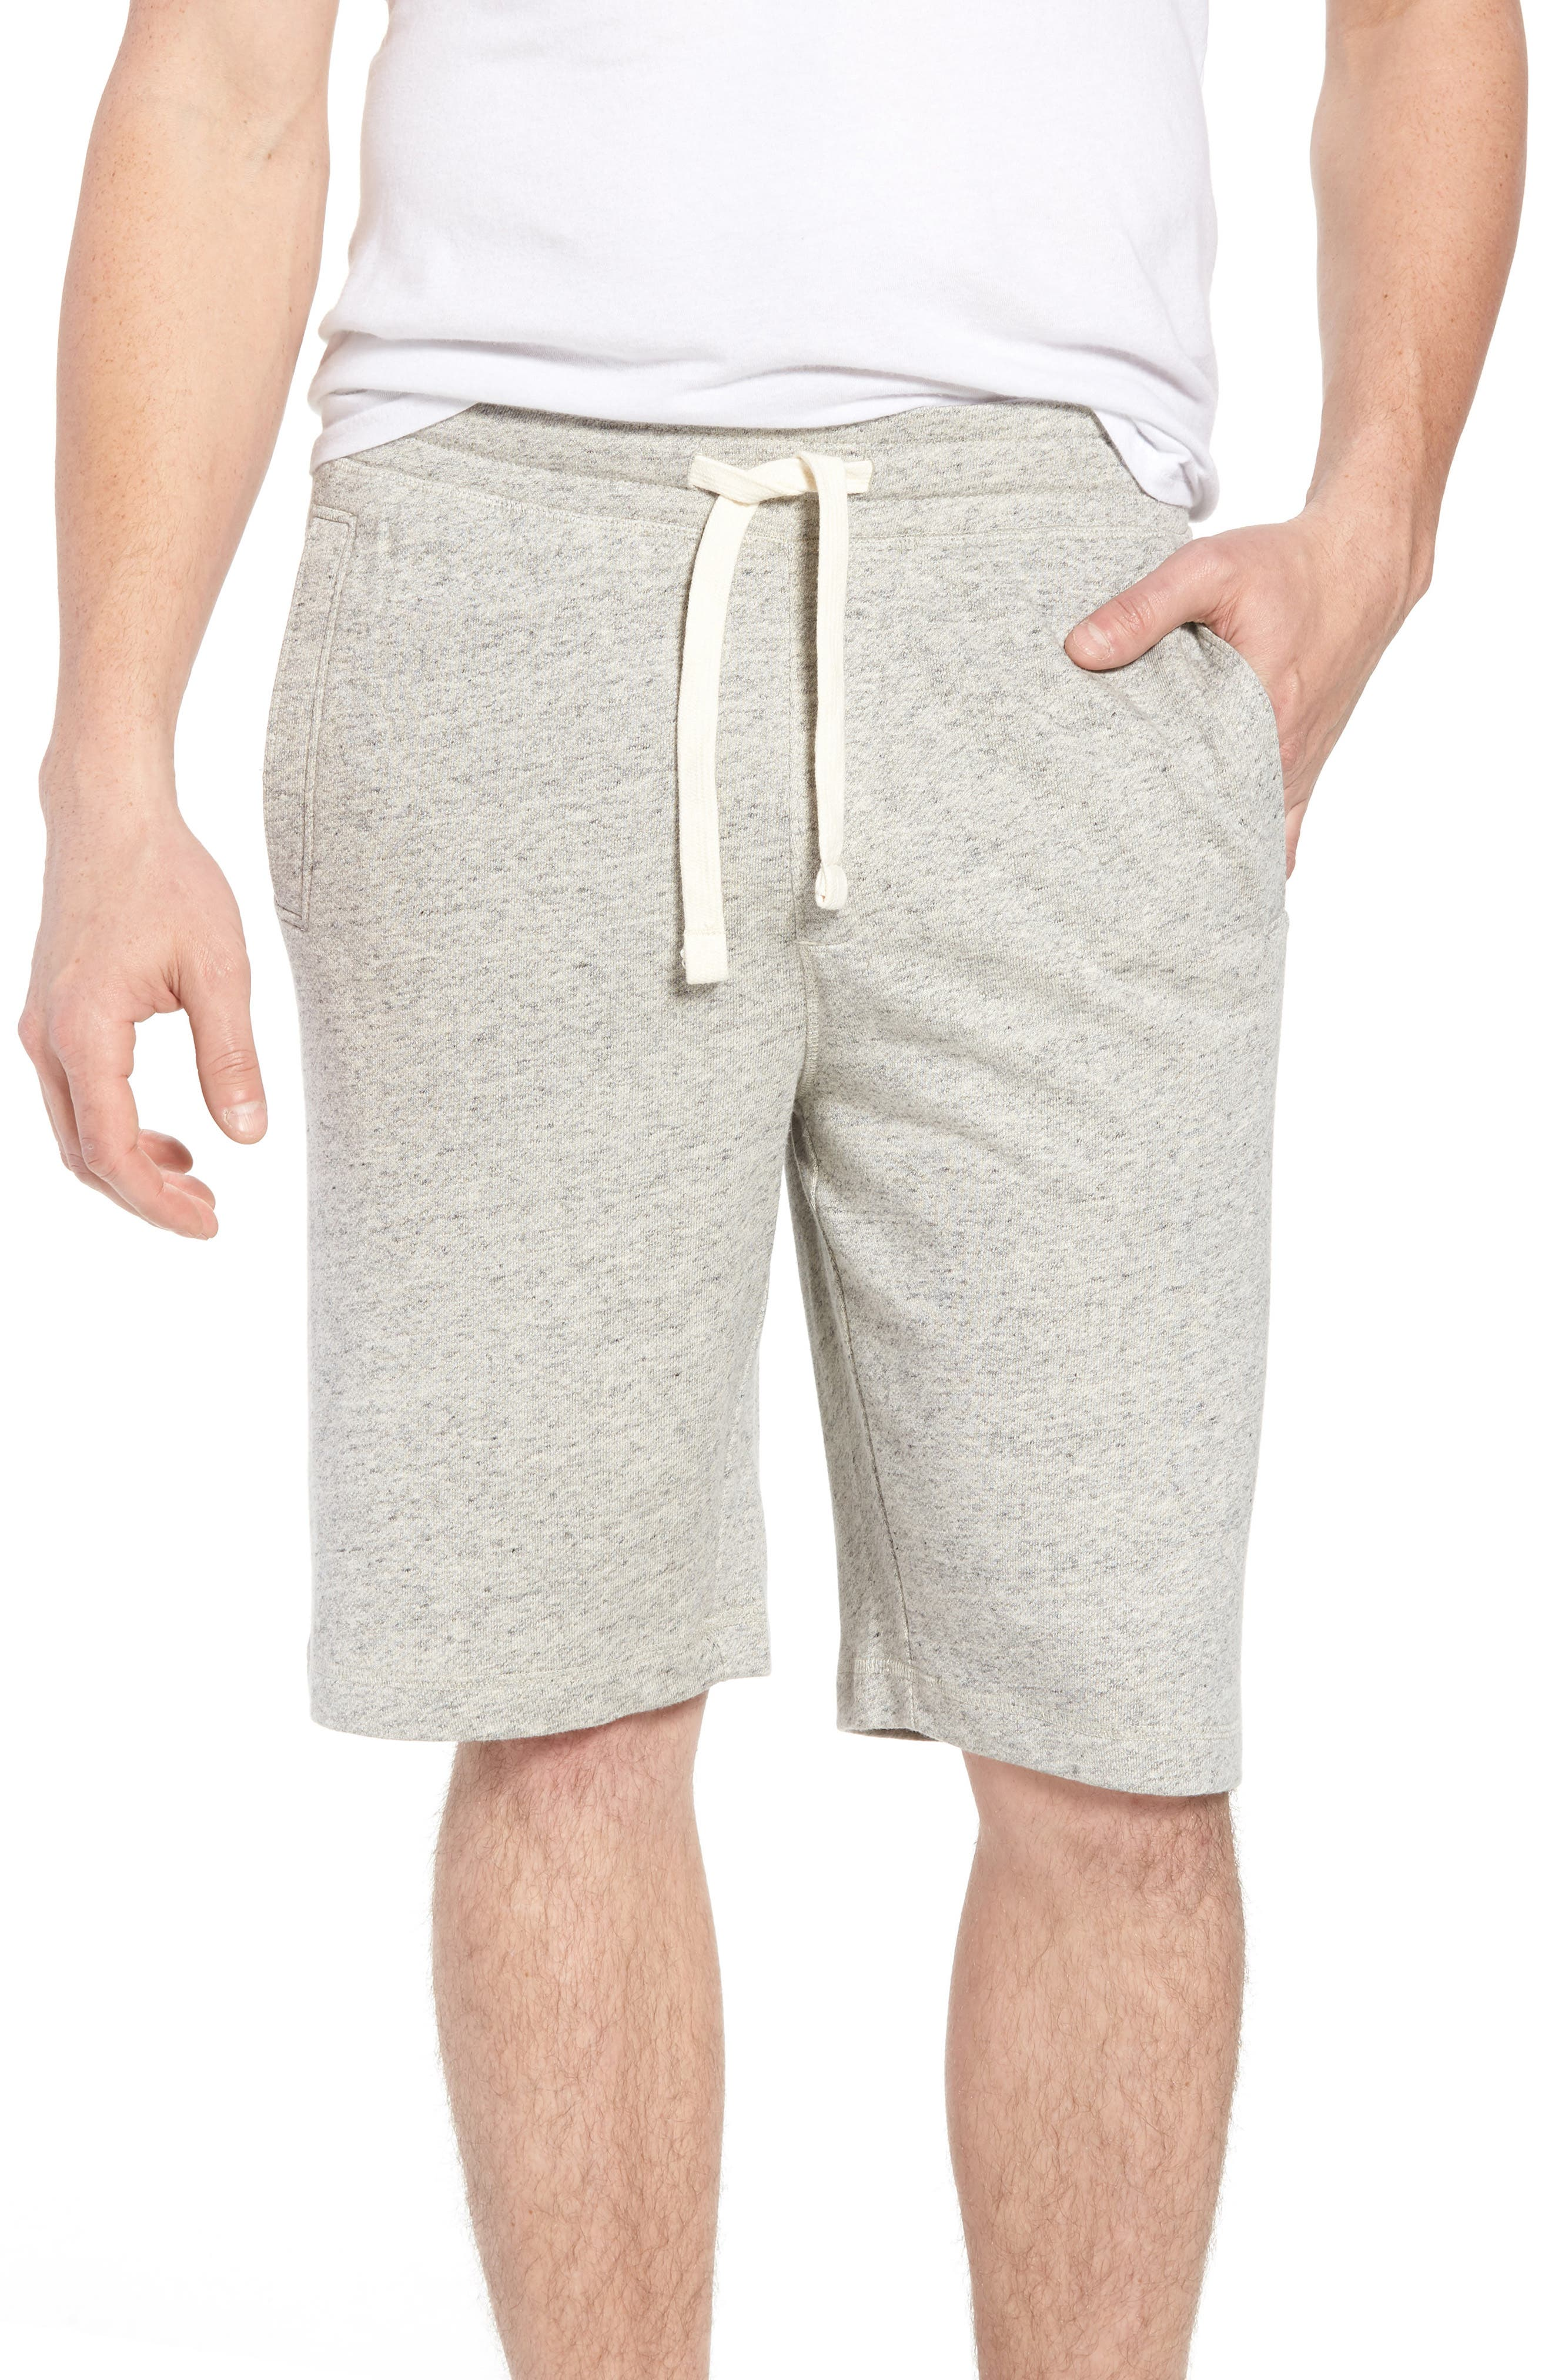 Main Image - Tailor Vintage Stretch Cotton Terry Shorts